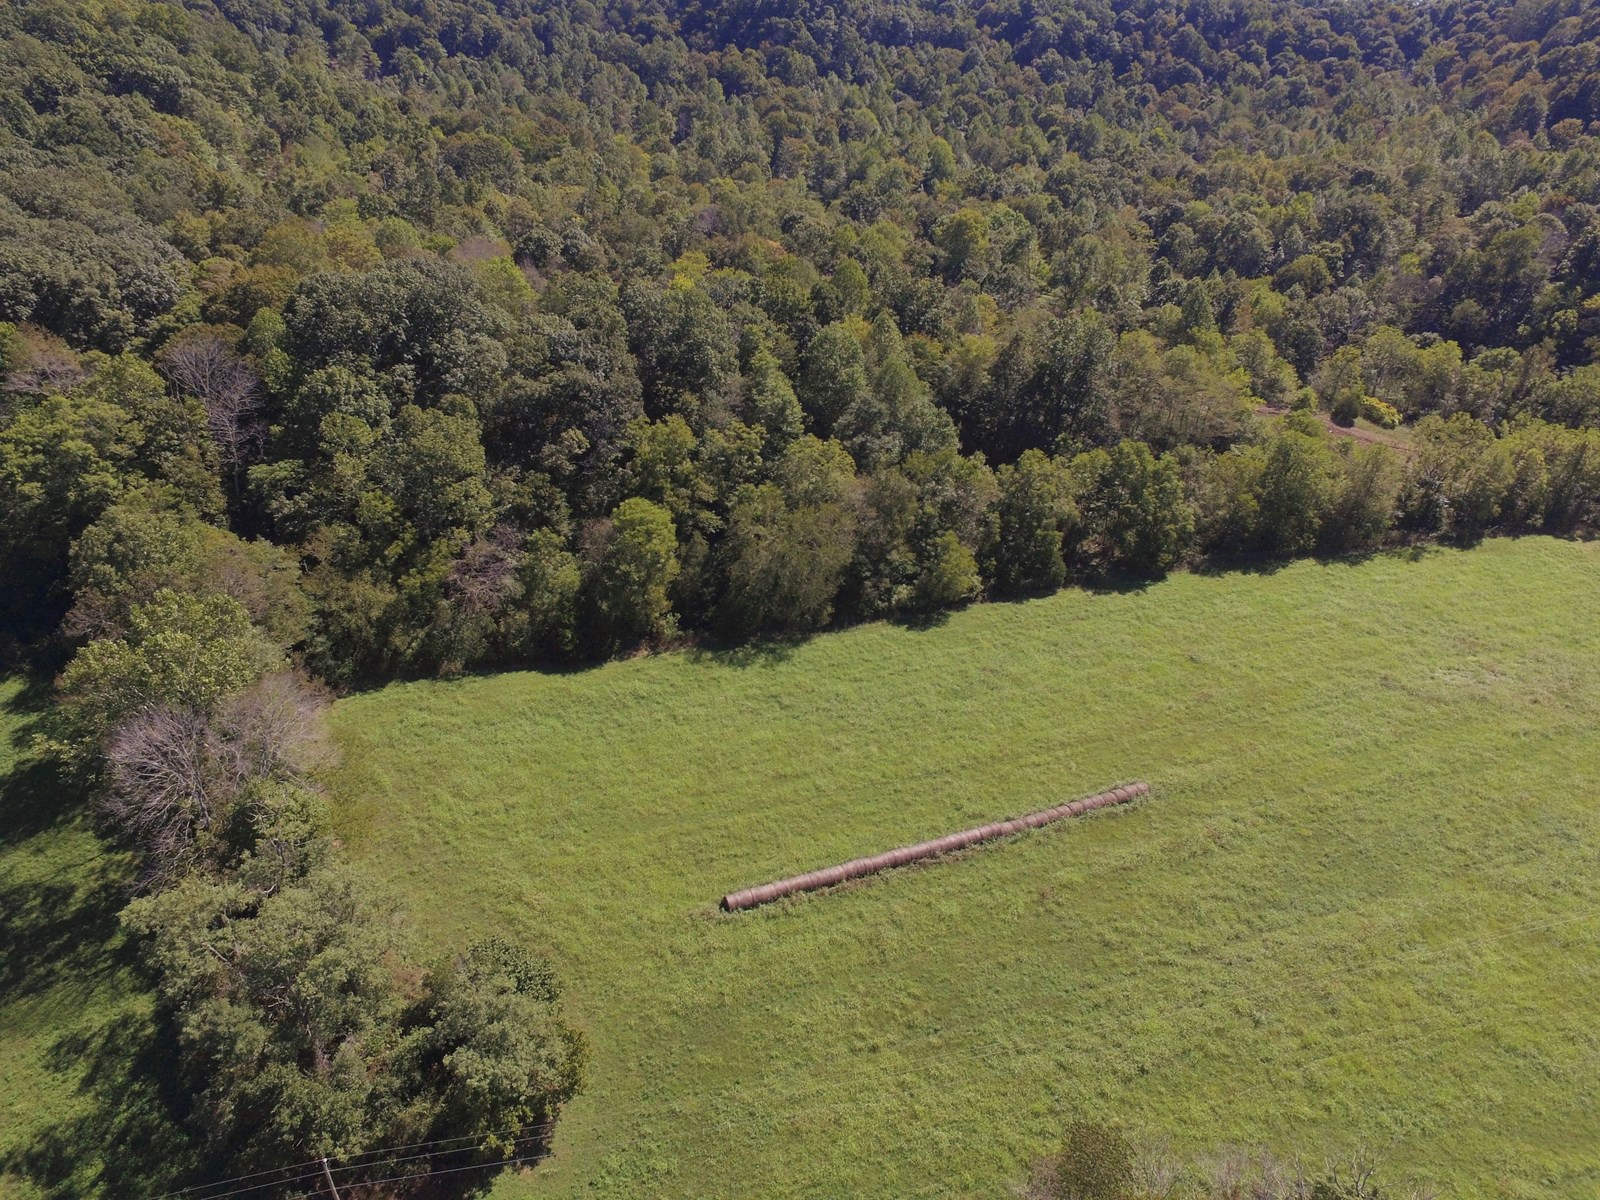 TRACT 4 - 22+/-ACRES - HUNTING - BLDG. SITES - LIBERTY, KY